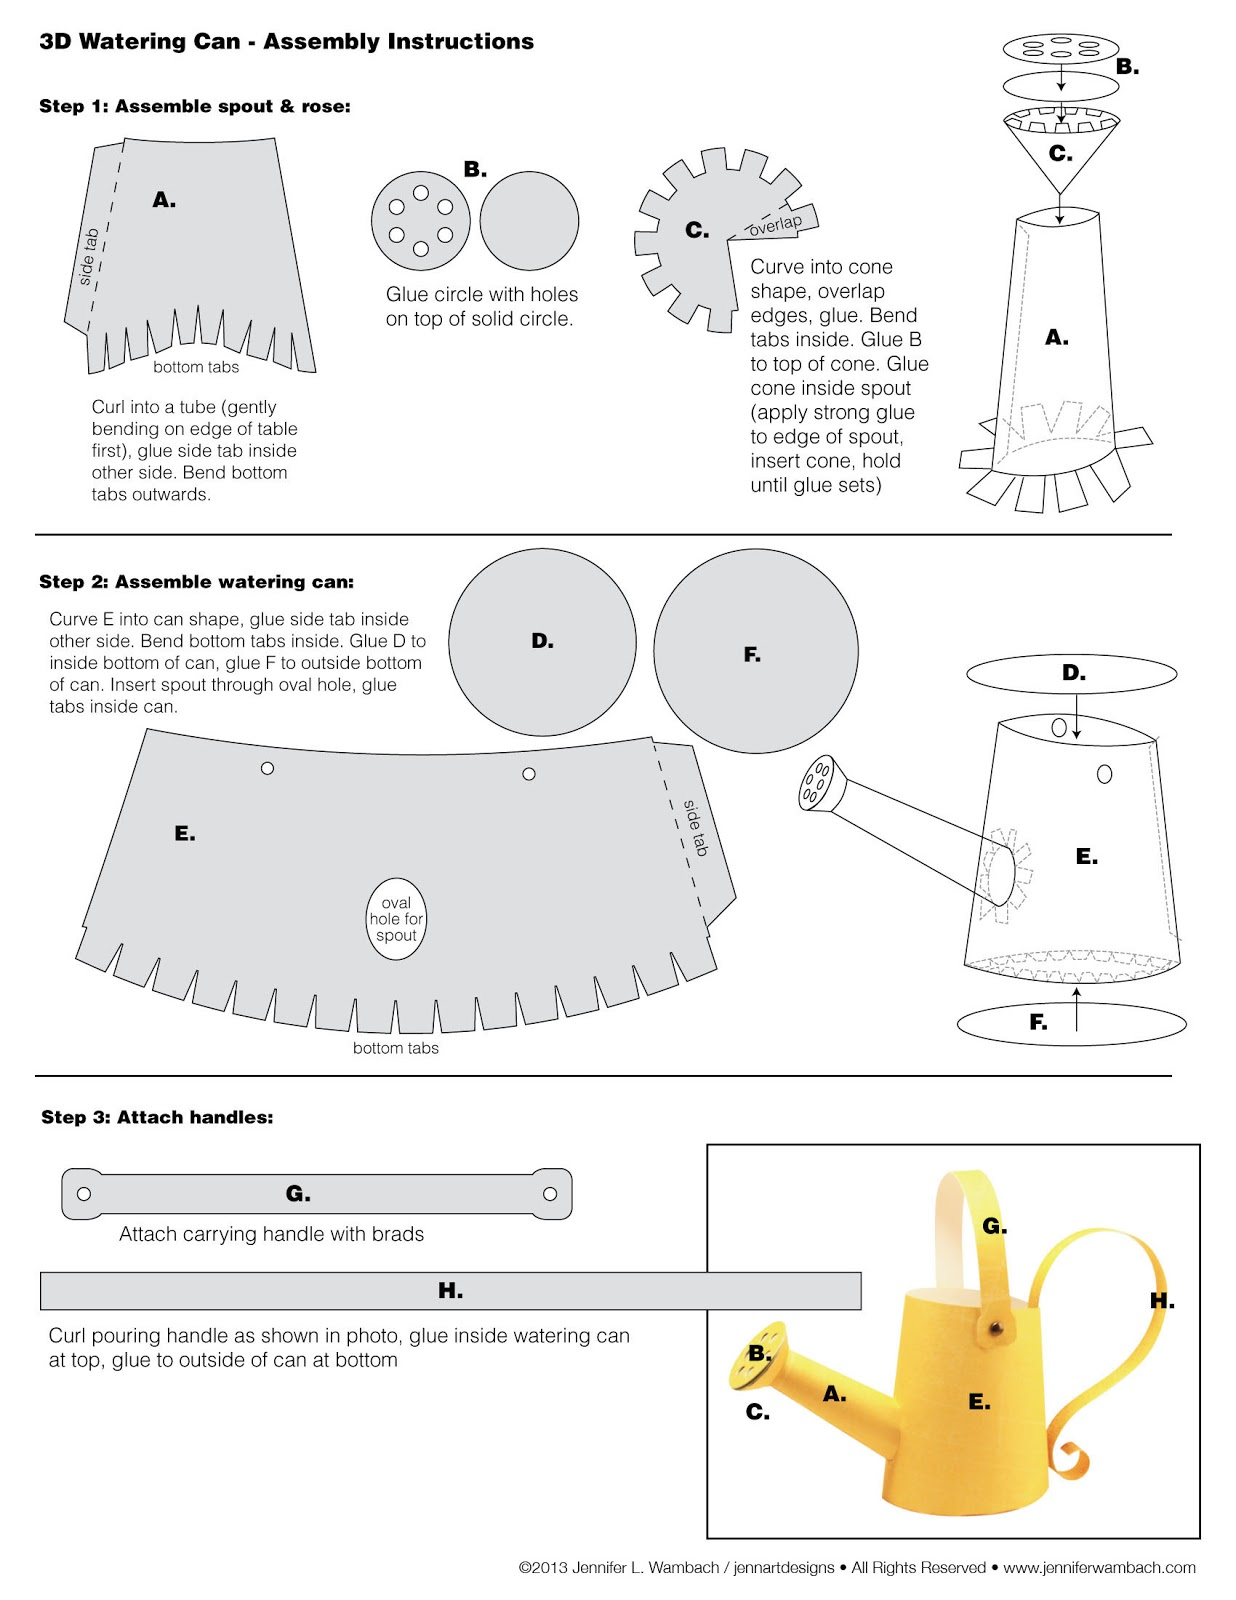 jennifer wambach design and illustration 3d watering can instructions